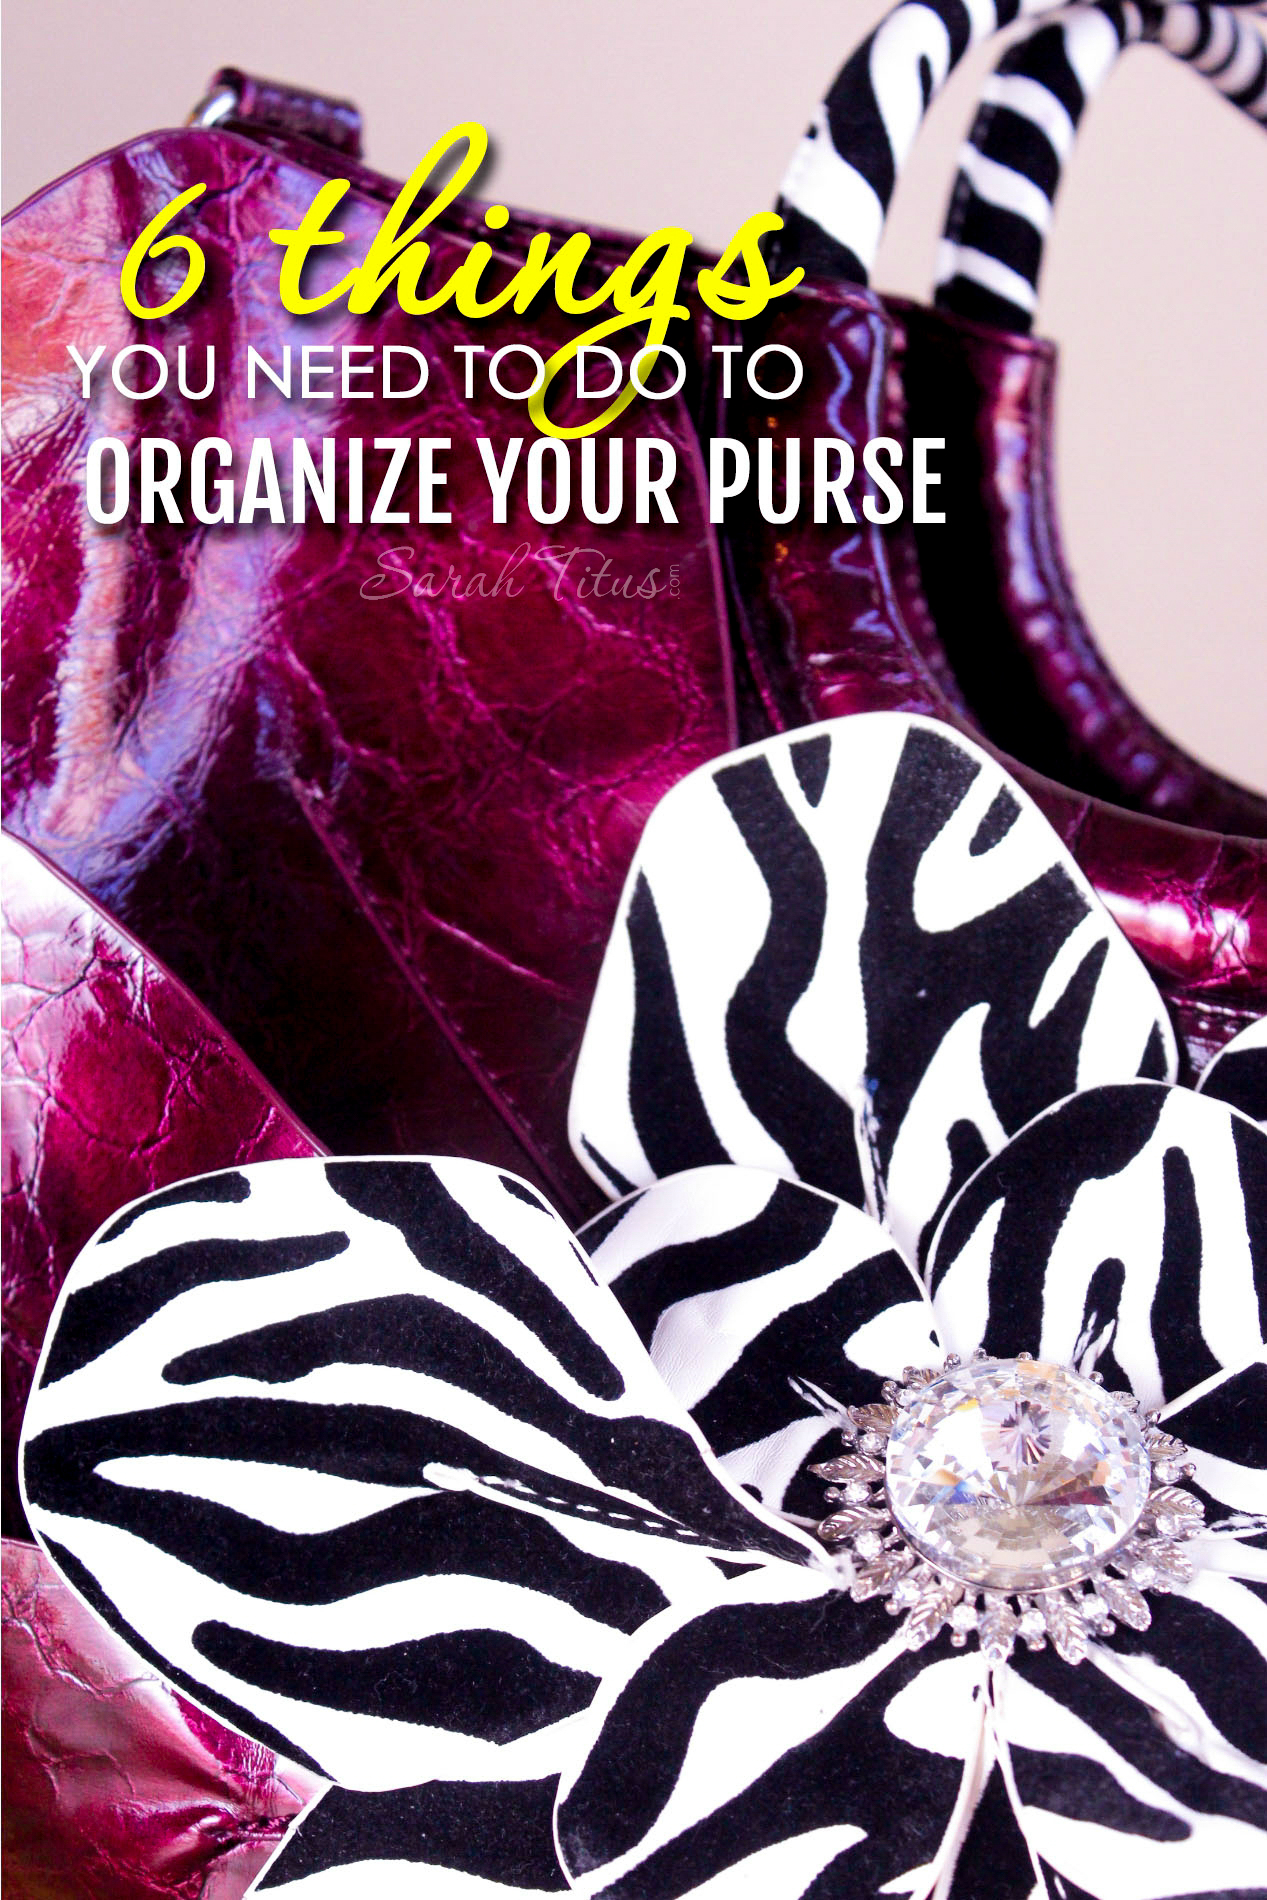 6 Things You Need To Do To Organize Your Purse